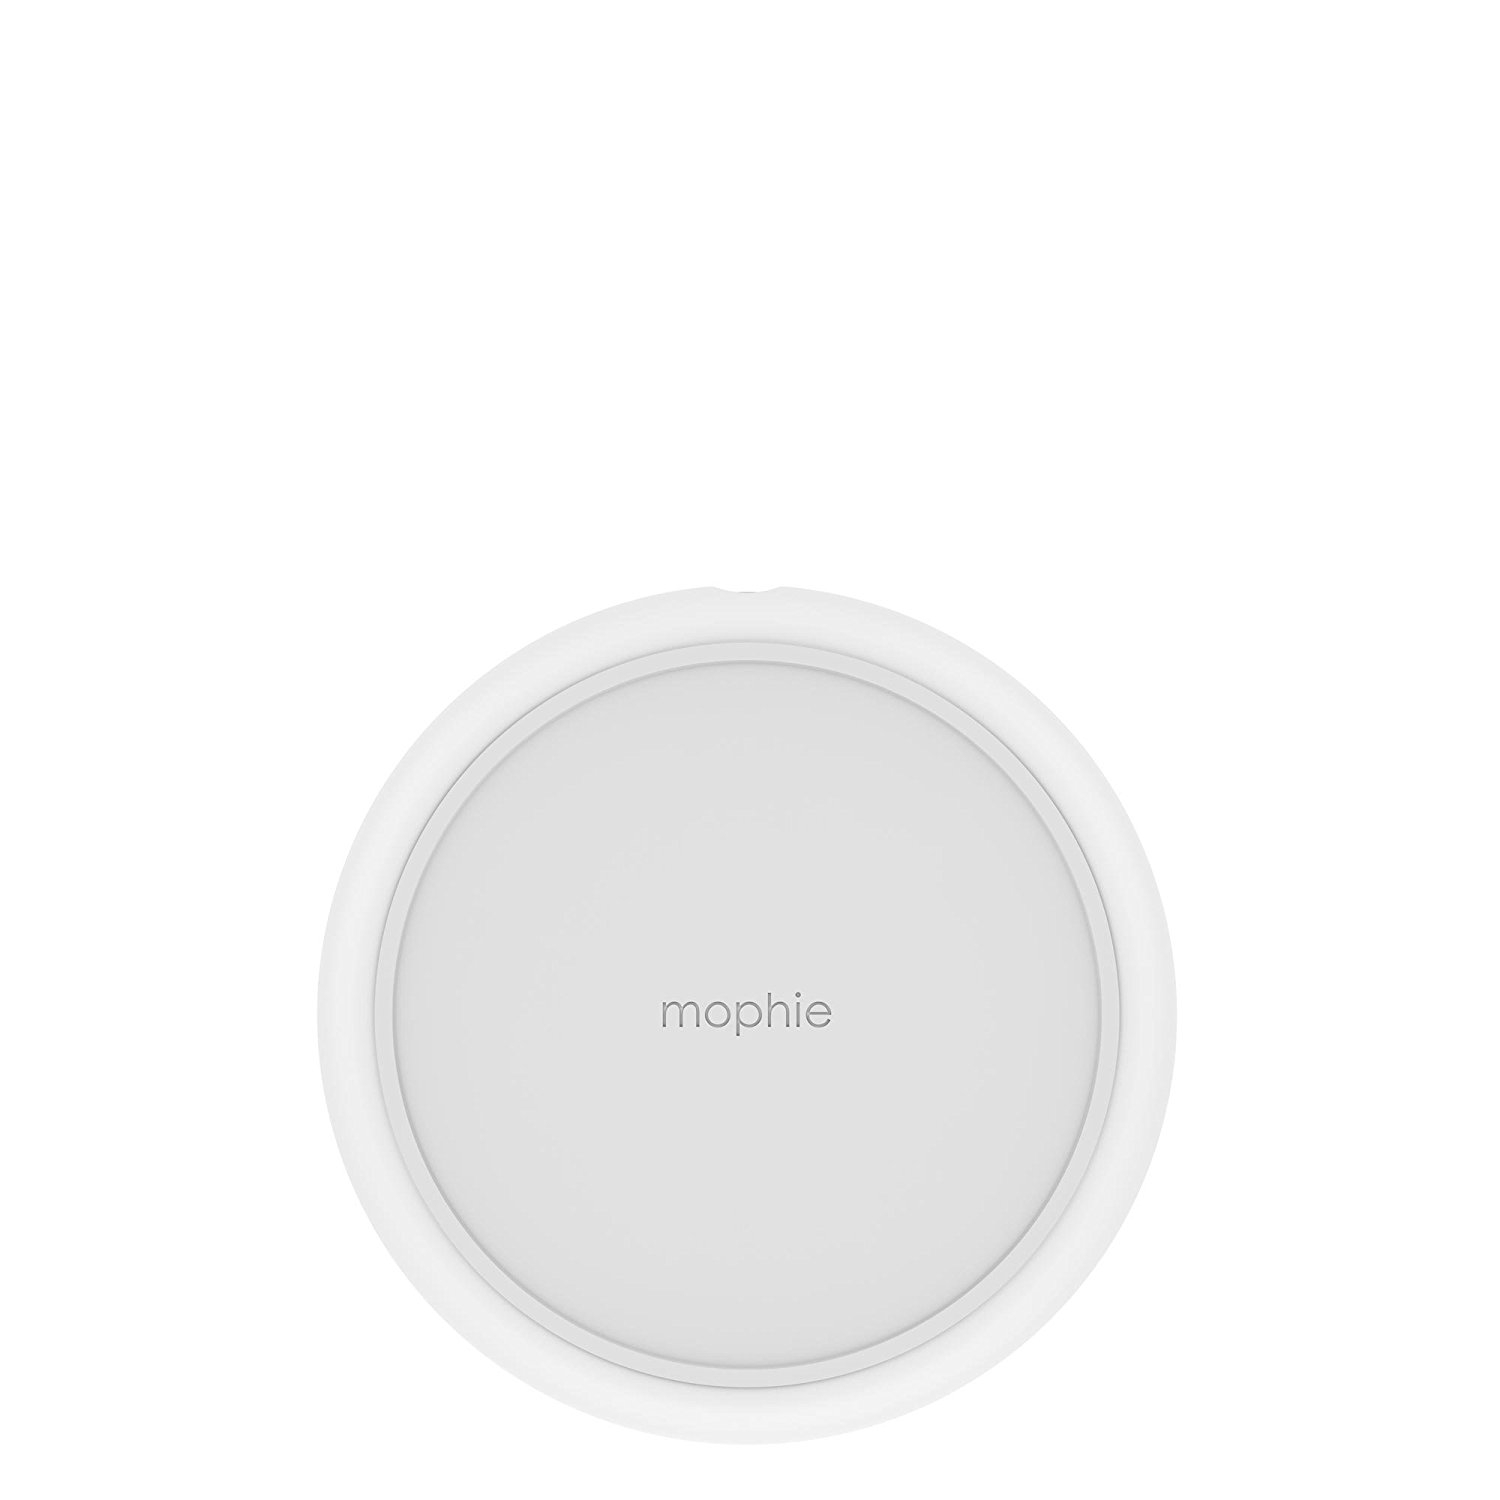 huge selection of 92593 e6b16 Details about mophie 10W Qi Wireless Charge Pad for iPhone X, iPhone 8,  Samsung & Qi Devices